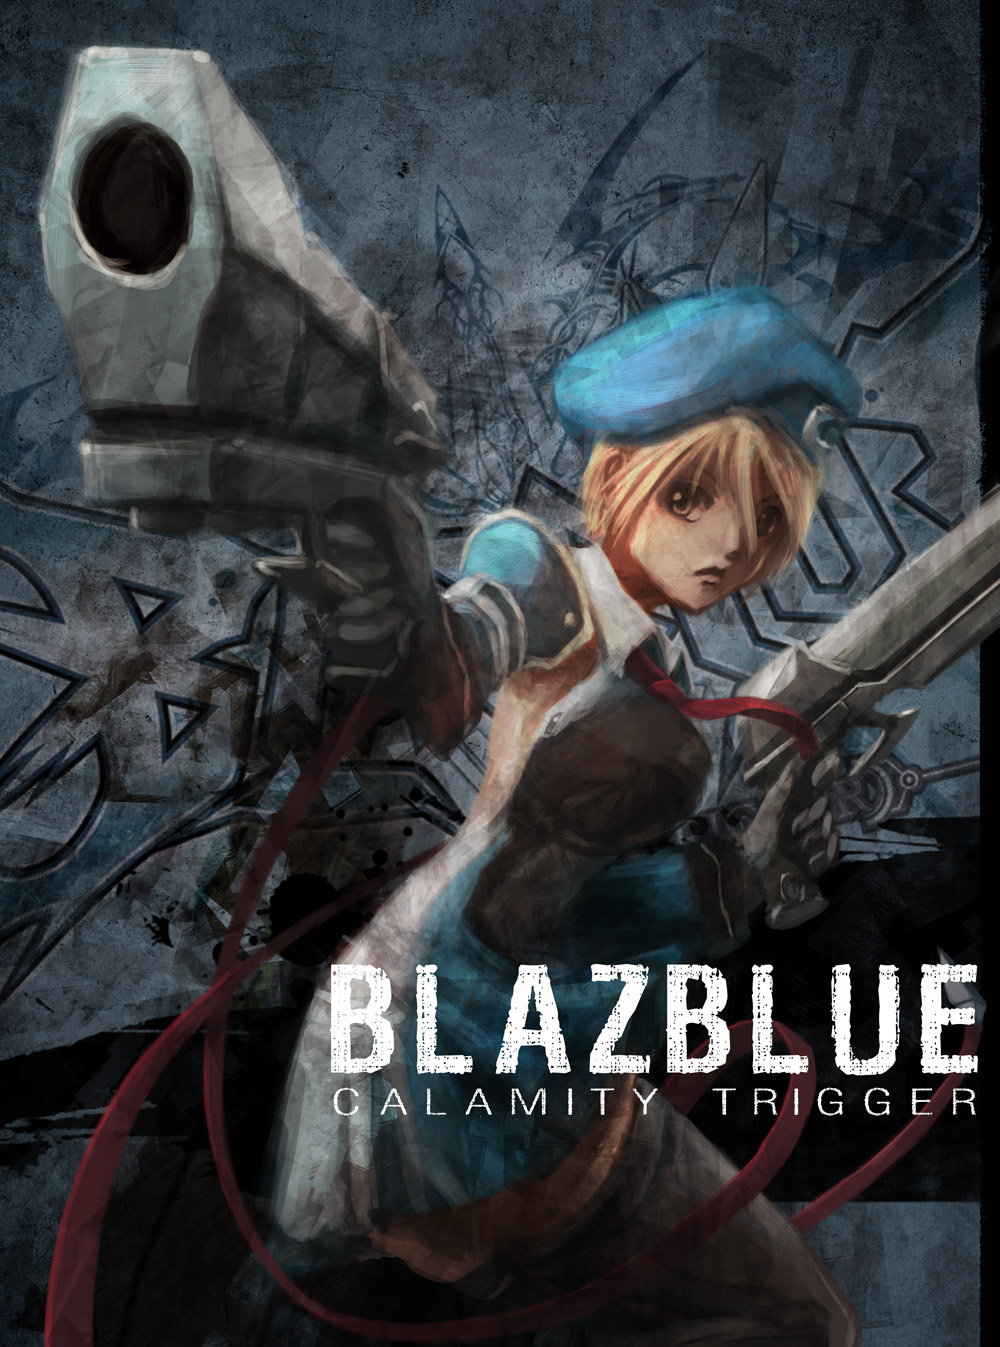 blazblue cover noel My art is on Blazblue UK Cover!